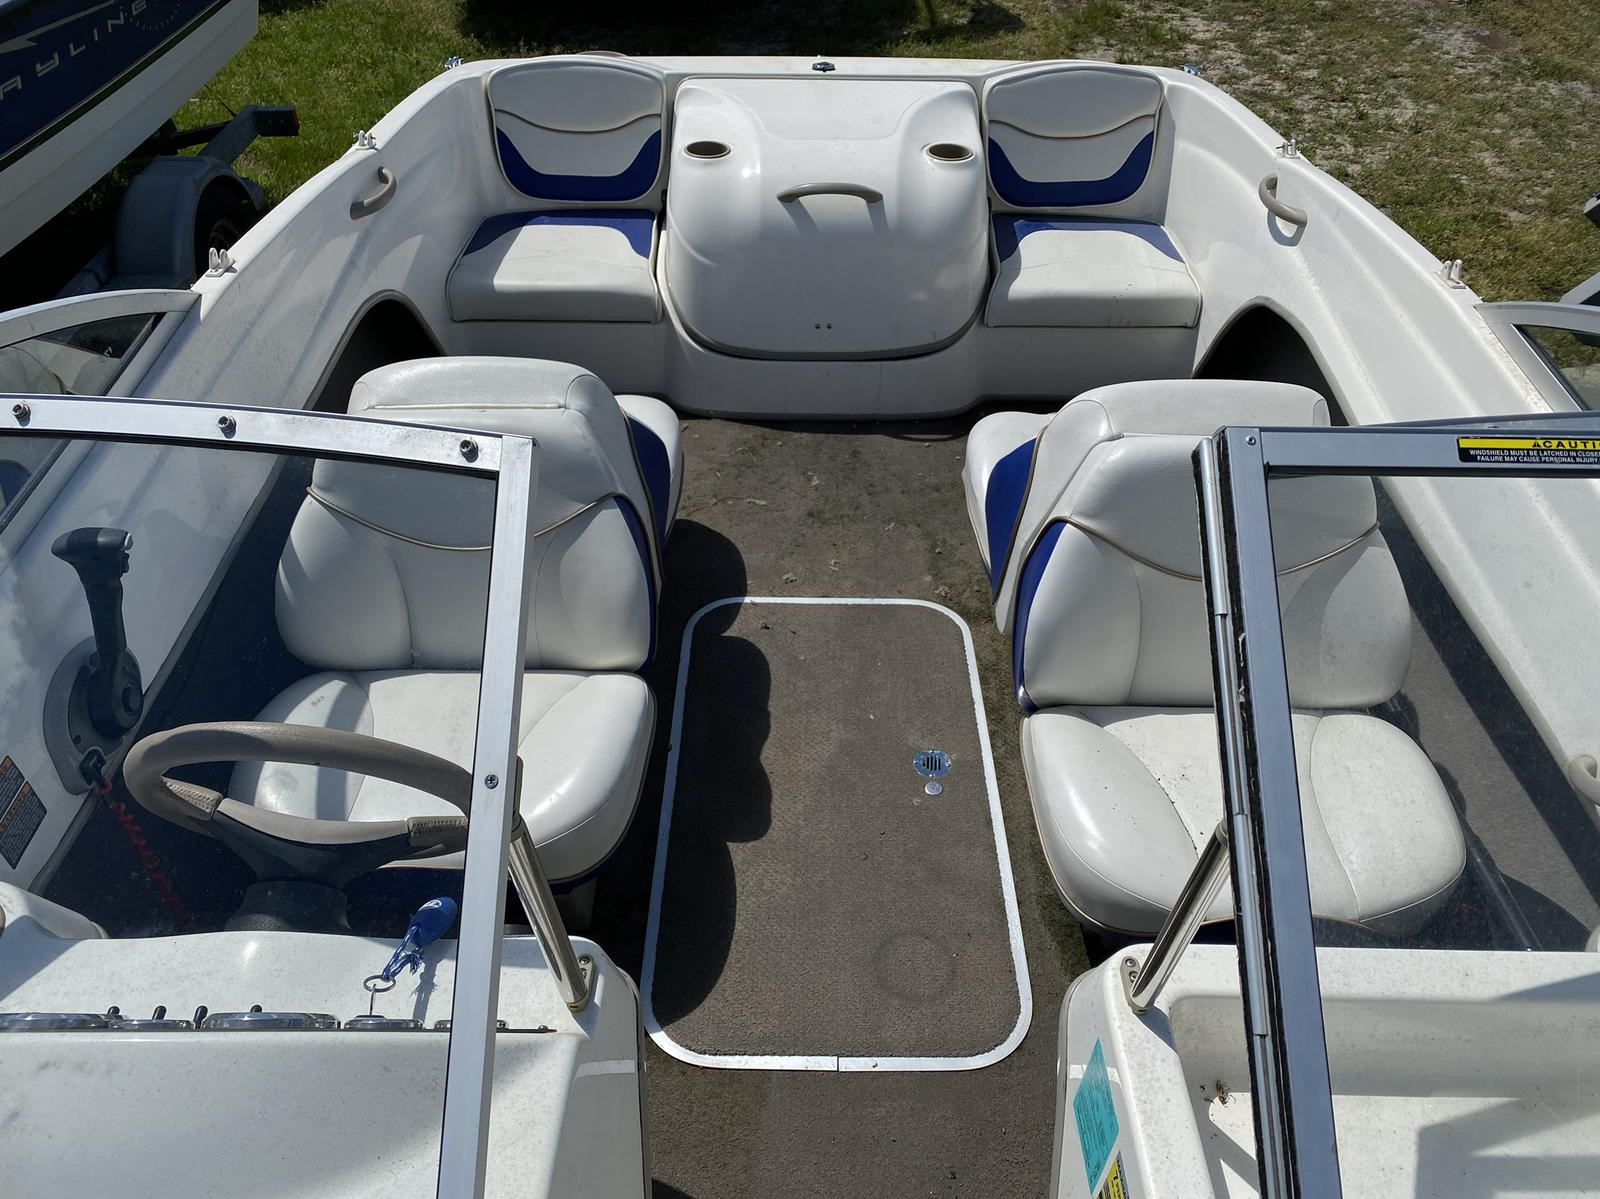 2003 Bayliner boat for sale, model of the boat is 175 Bowrider & Image # 3 of 10